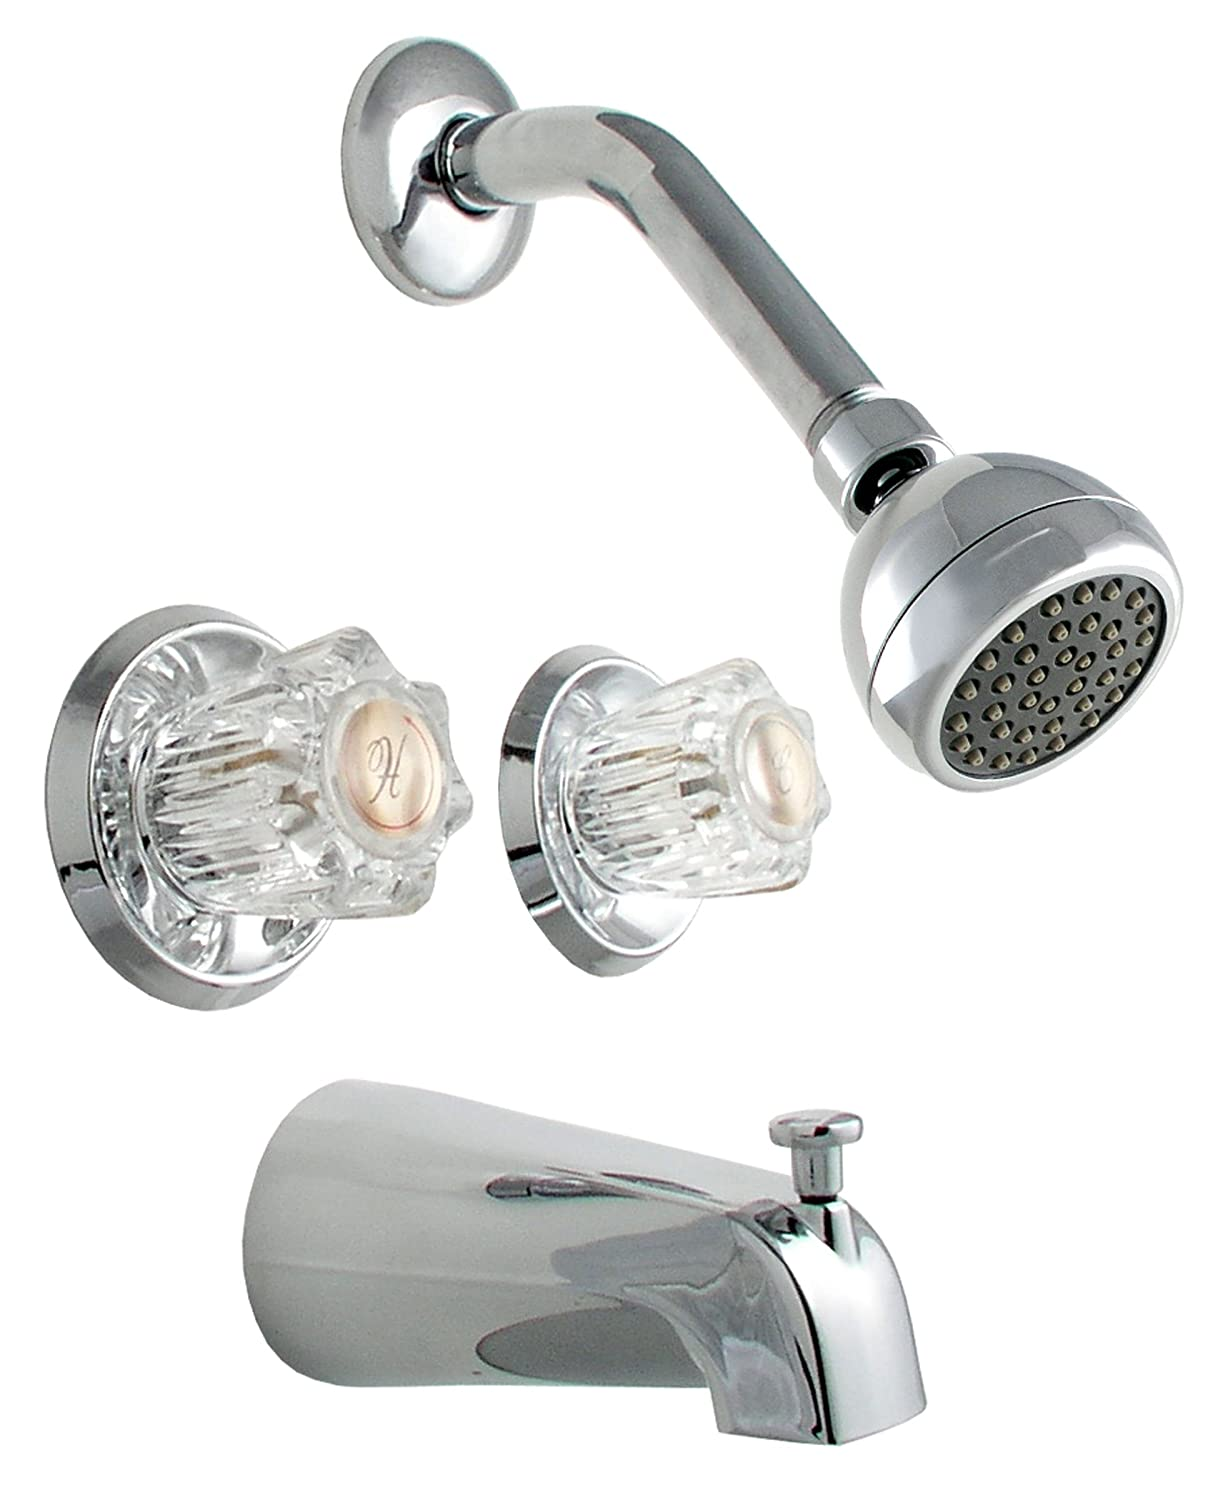 LDR 011 8700 Double Handle Tub And Shower Faucet, Chrome   Two Handle Tub  And Shower Faucets   Amazon.com